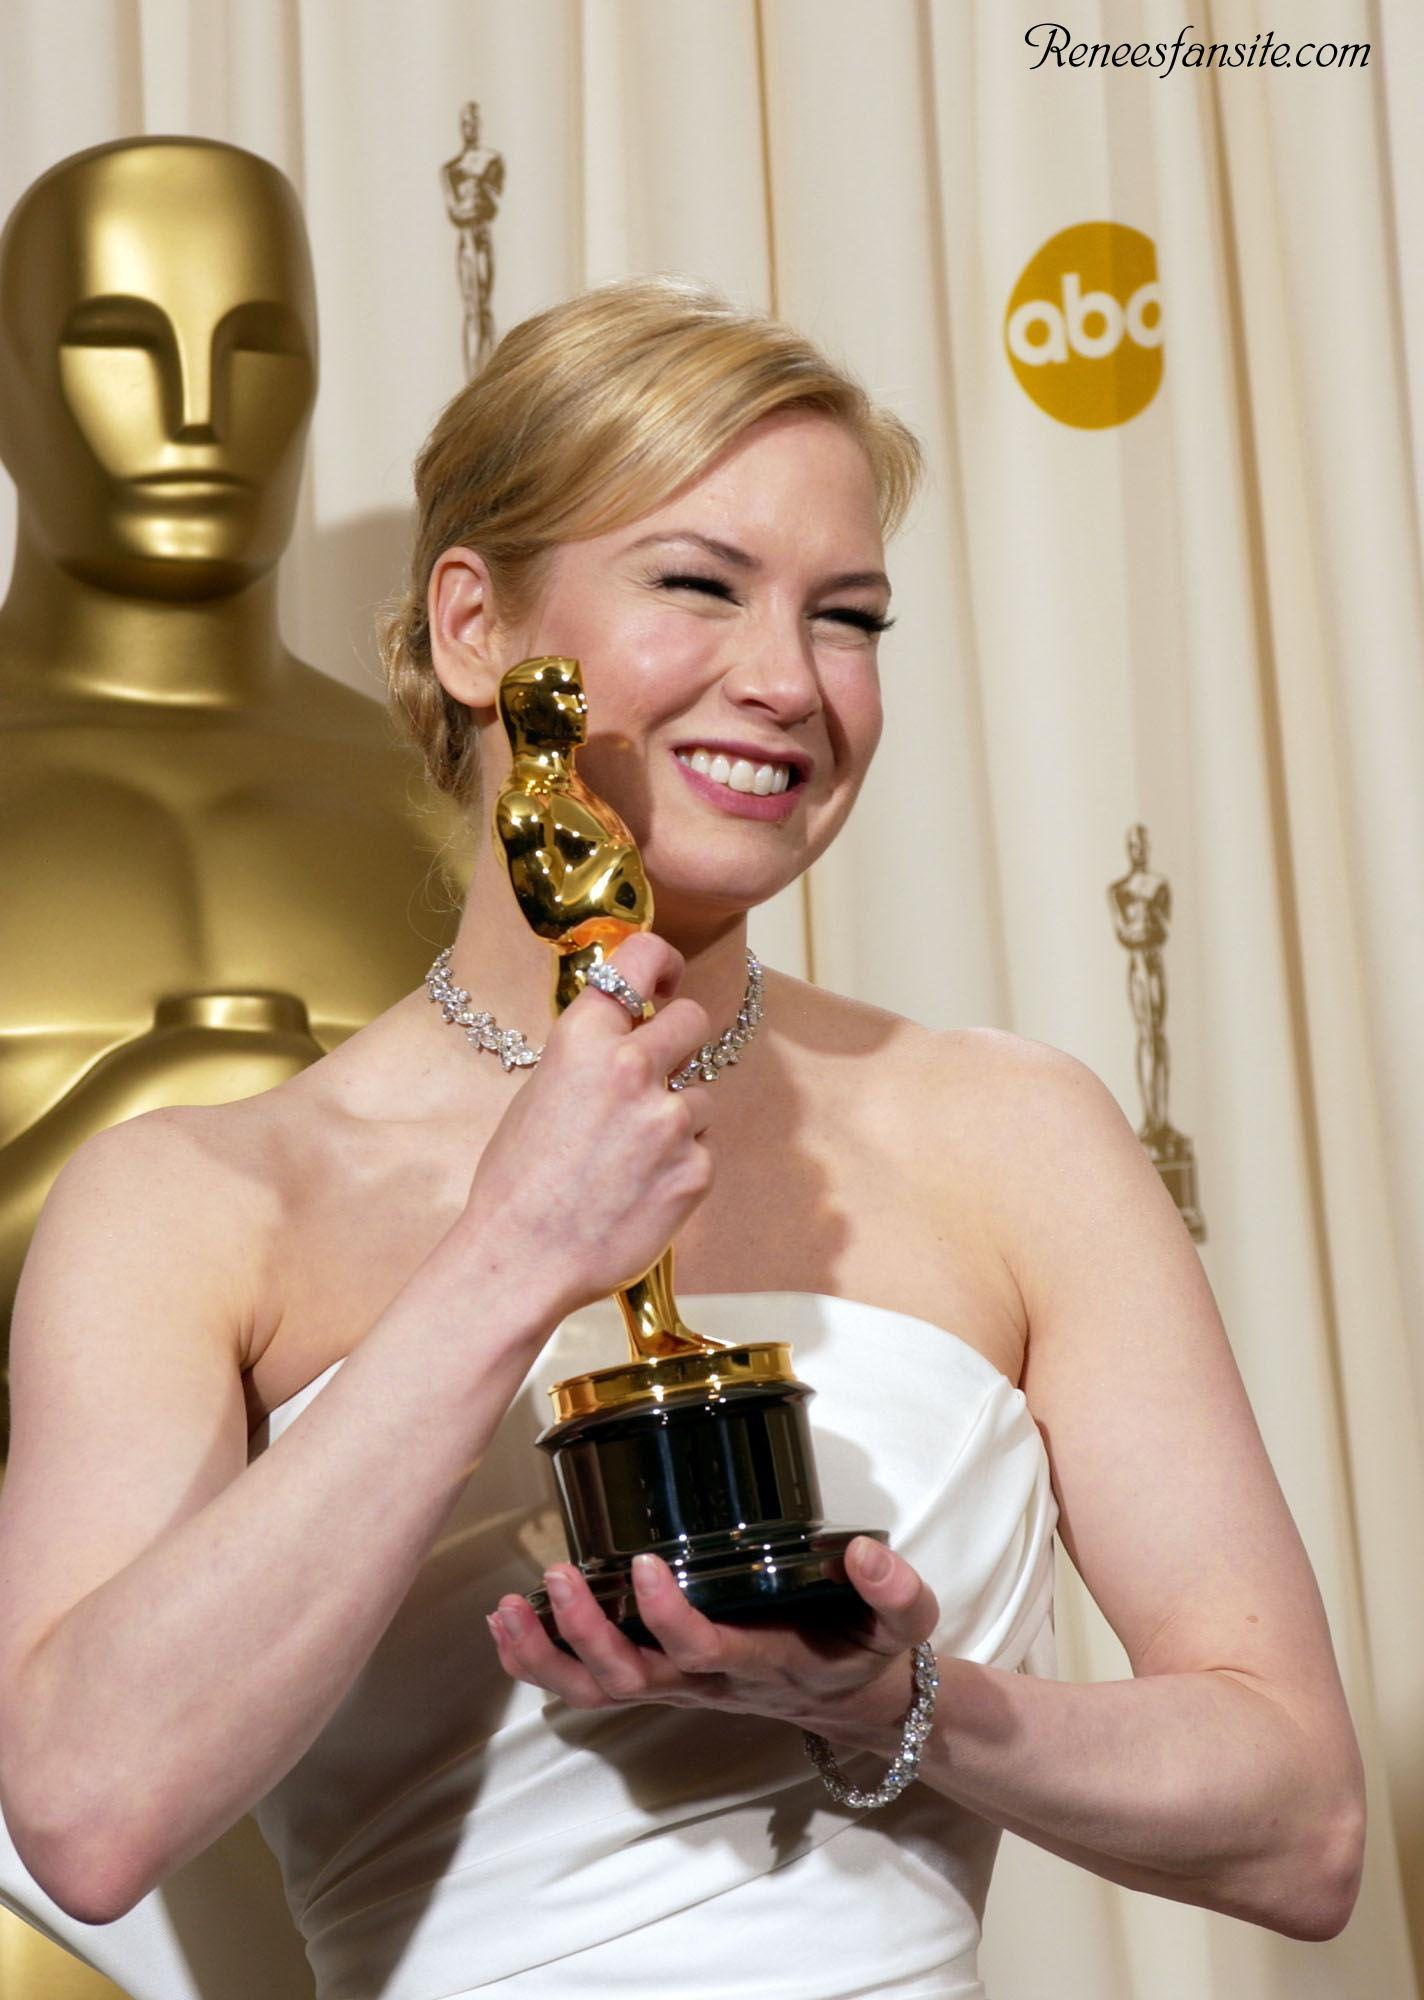 RENEE ZELLWEGER won an Oscar for Best Actress in the film Cold